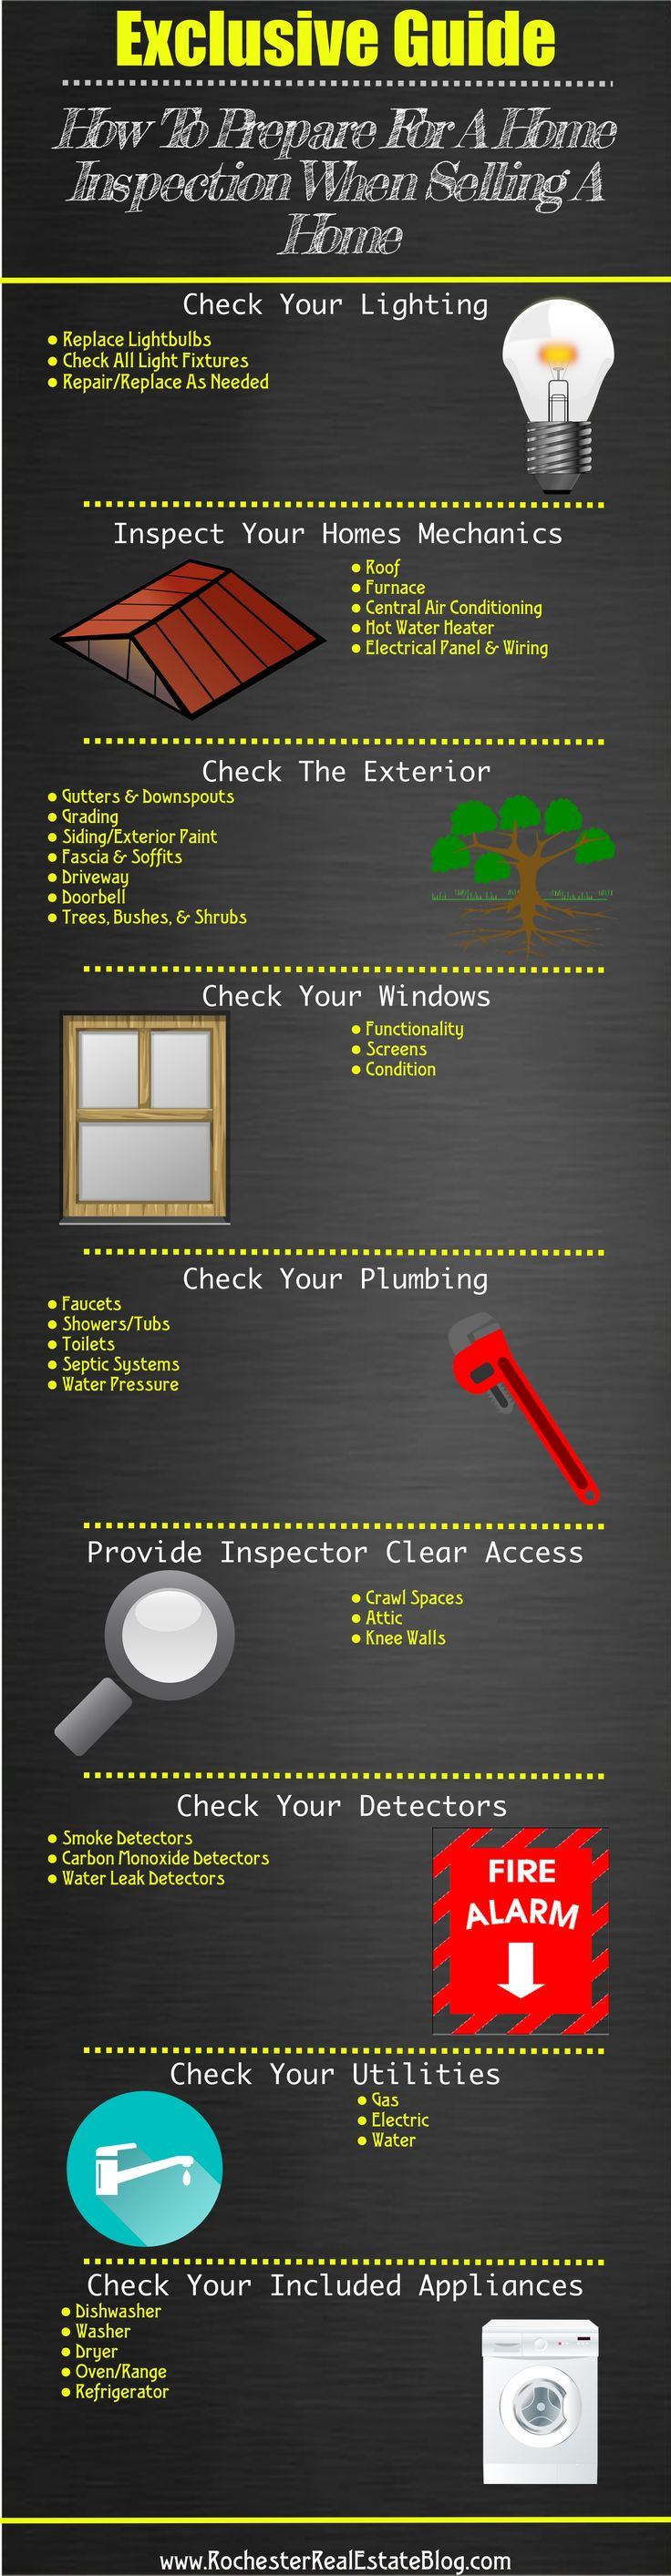 Exclusive Guide On How To Prepare For A Home Inspection When Selling A Home http://www.rochesterrealestateblog.com/prepare-for-a-home-inspection-selling-home/